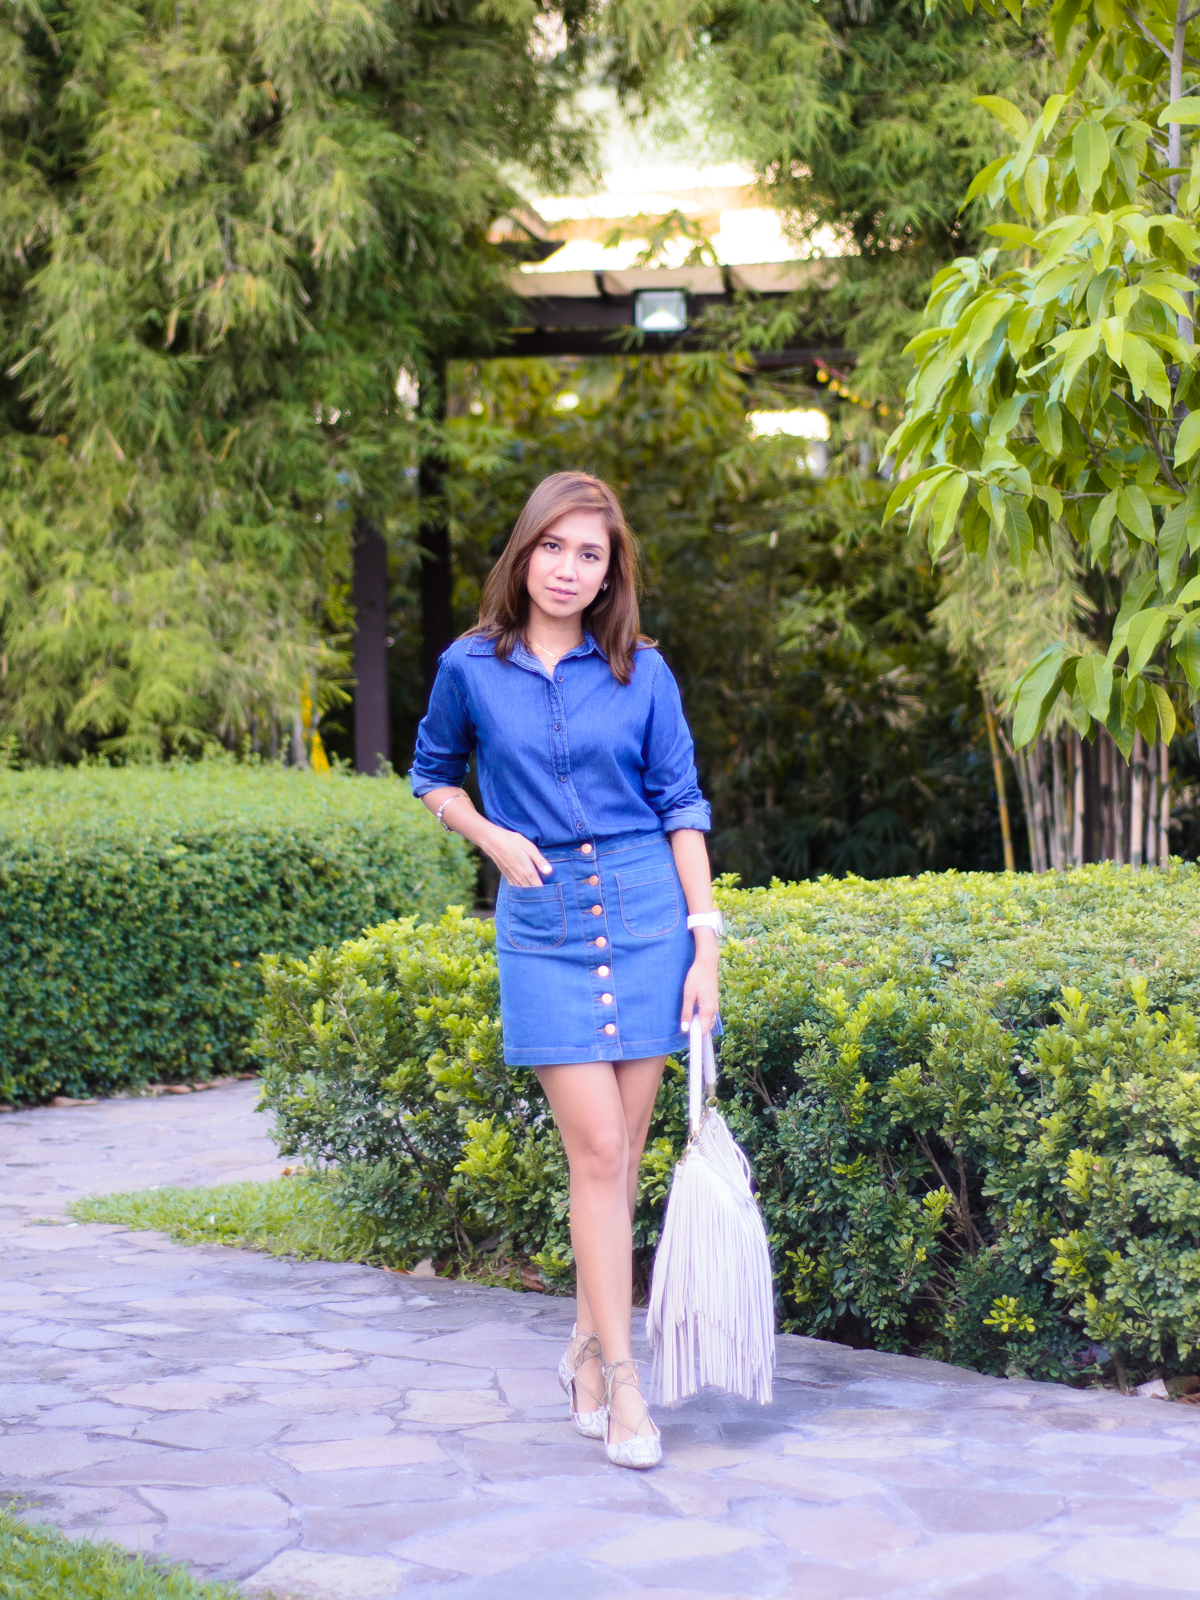 Cebu Blogger, OUTFIT OF THE DAY, Cebu Fashion Blogger, Cebu Fashion Bloggers, Philippine Blogger, Penshoppe, Toni Pino, Toni Pino-Oca,